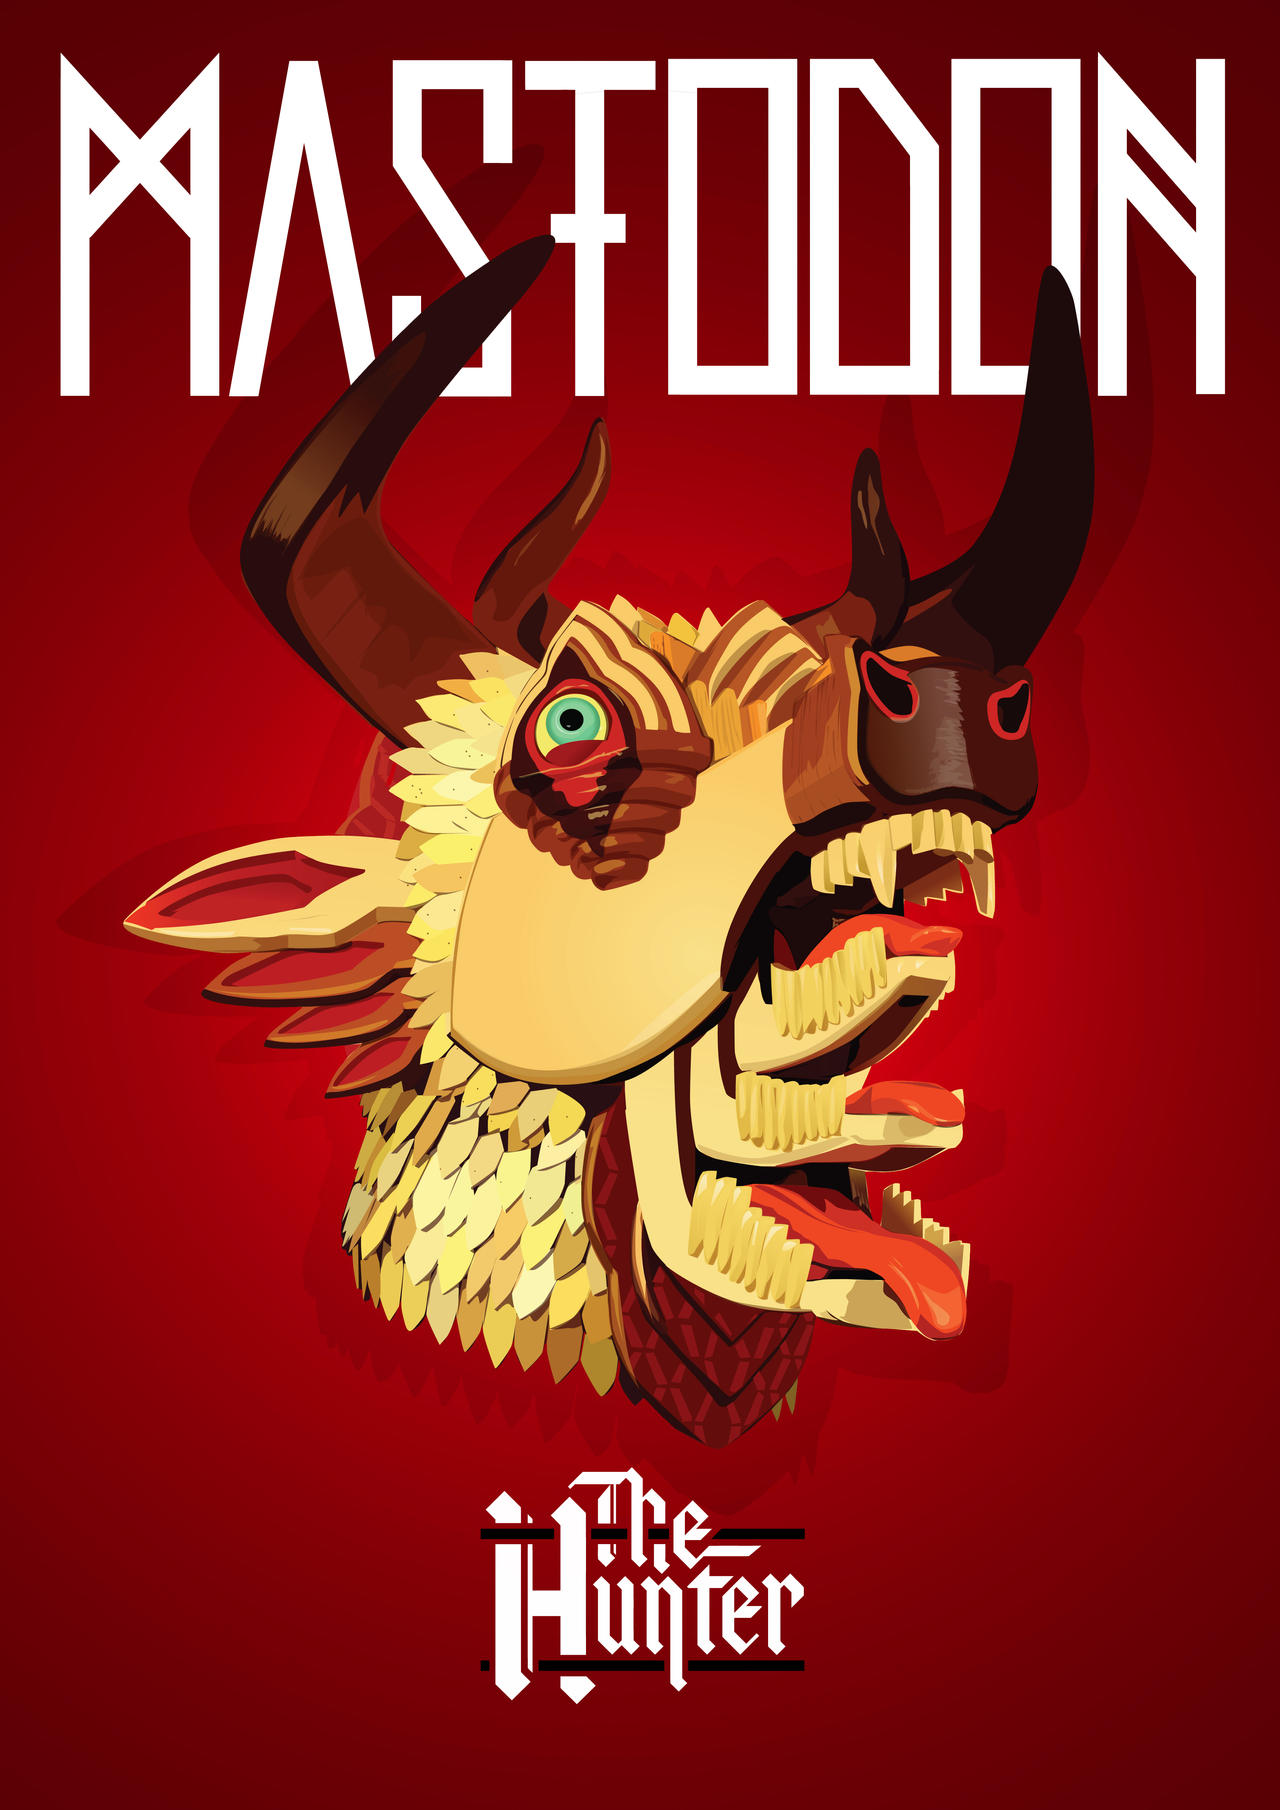 Mastodon - The Hunter Poster A3 by vortex-br on DeviantArt